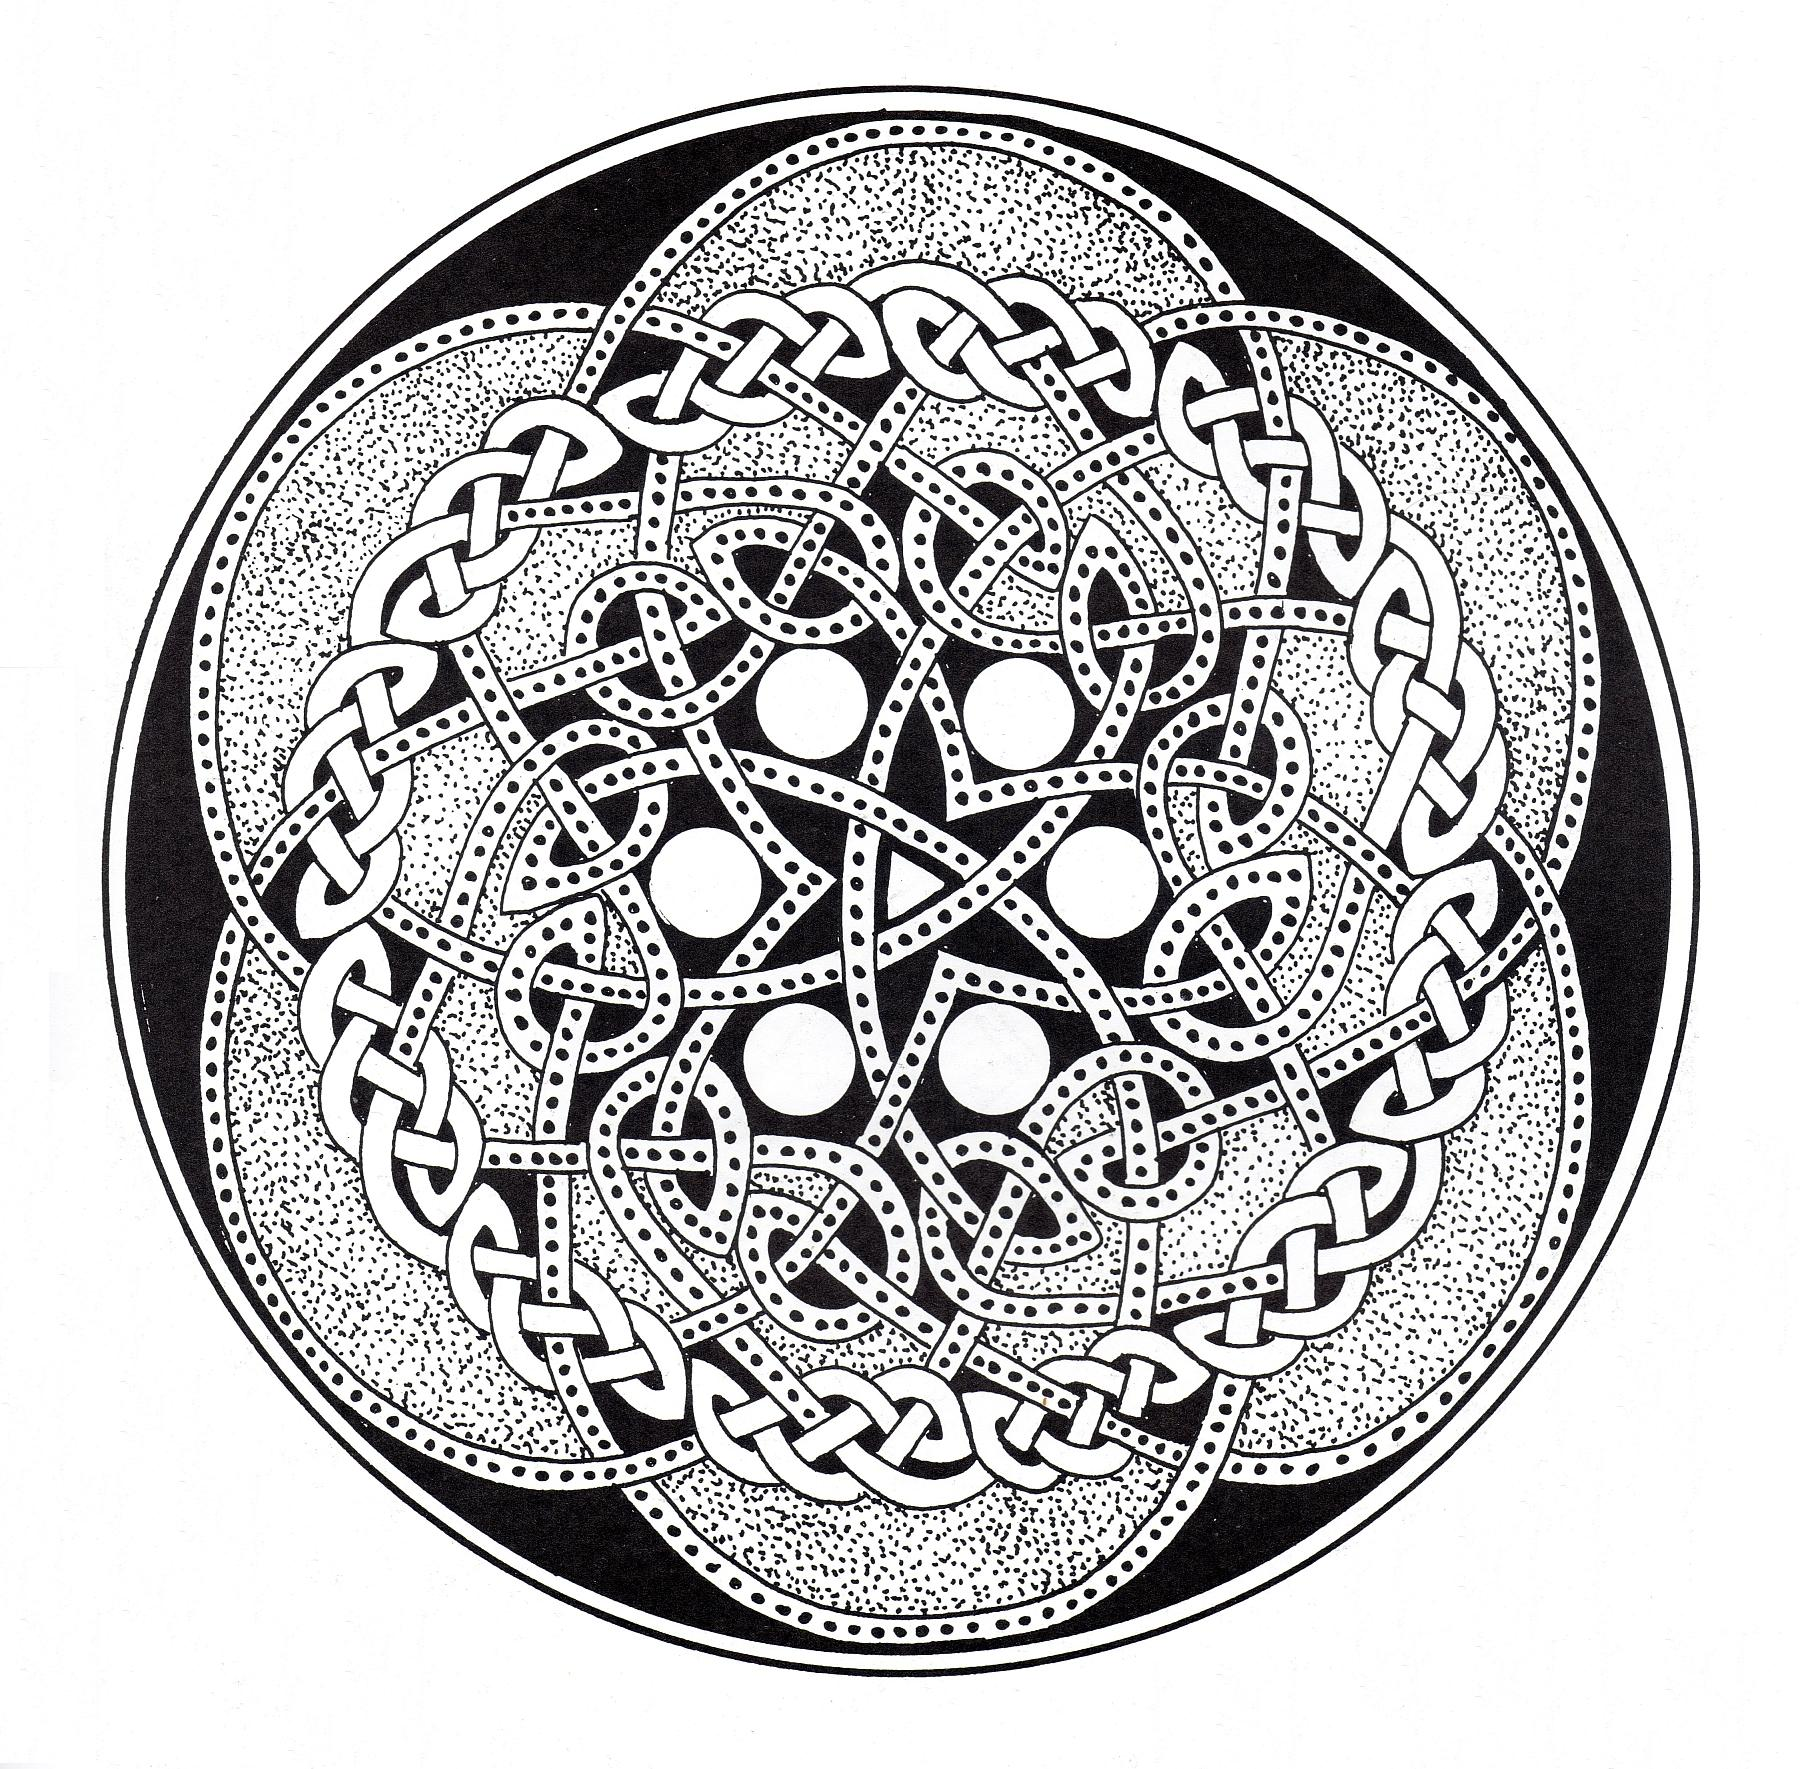 A Mandala coloring page with a lot of details, perfect if you like complex coloring pages, and if you like to express your creativity.